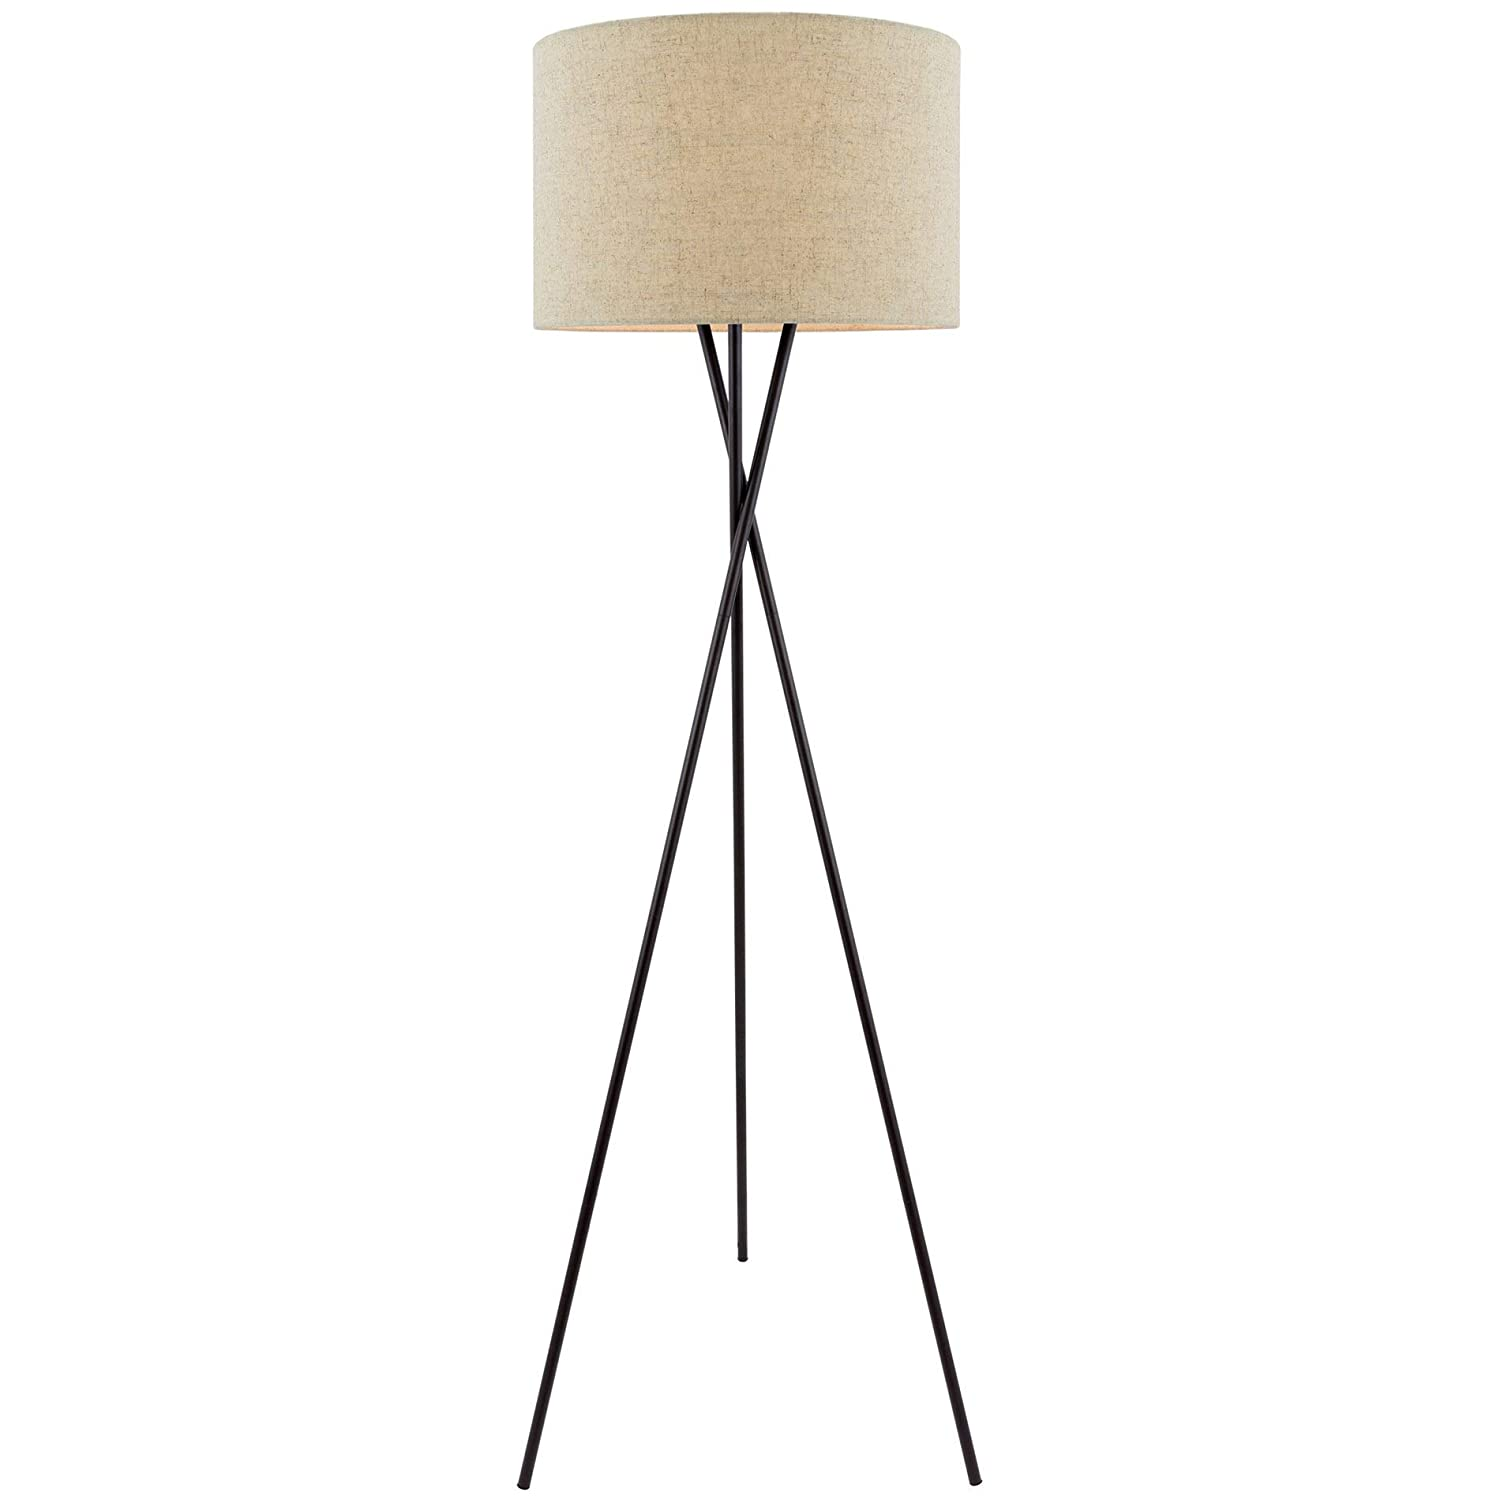 "Kira Home Sadie 60"" Modern Tripod LED Floor Lamp + 9W Bulb (Energy Efficient/Eco-Friendly), Honey Beige Drum Shade, Oil Rubbed Bronze Finish"